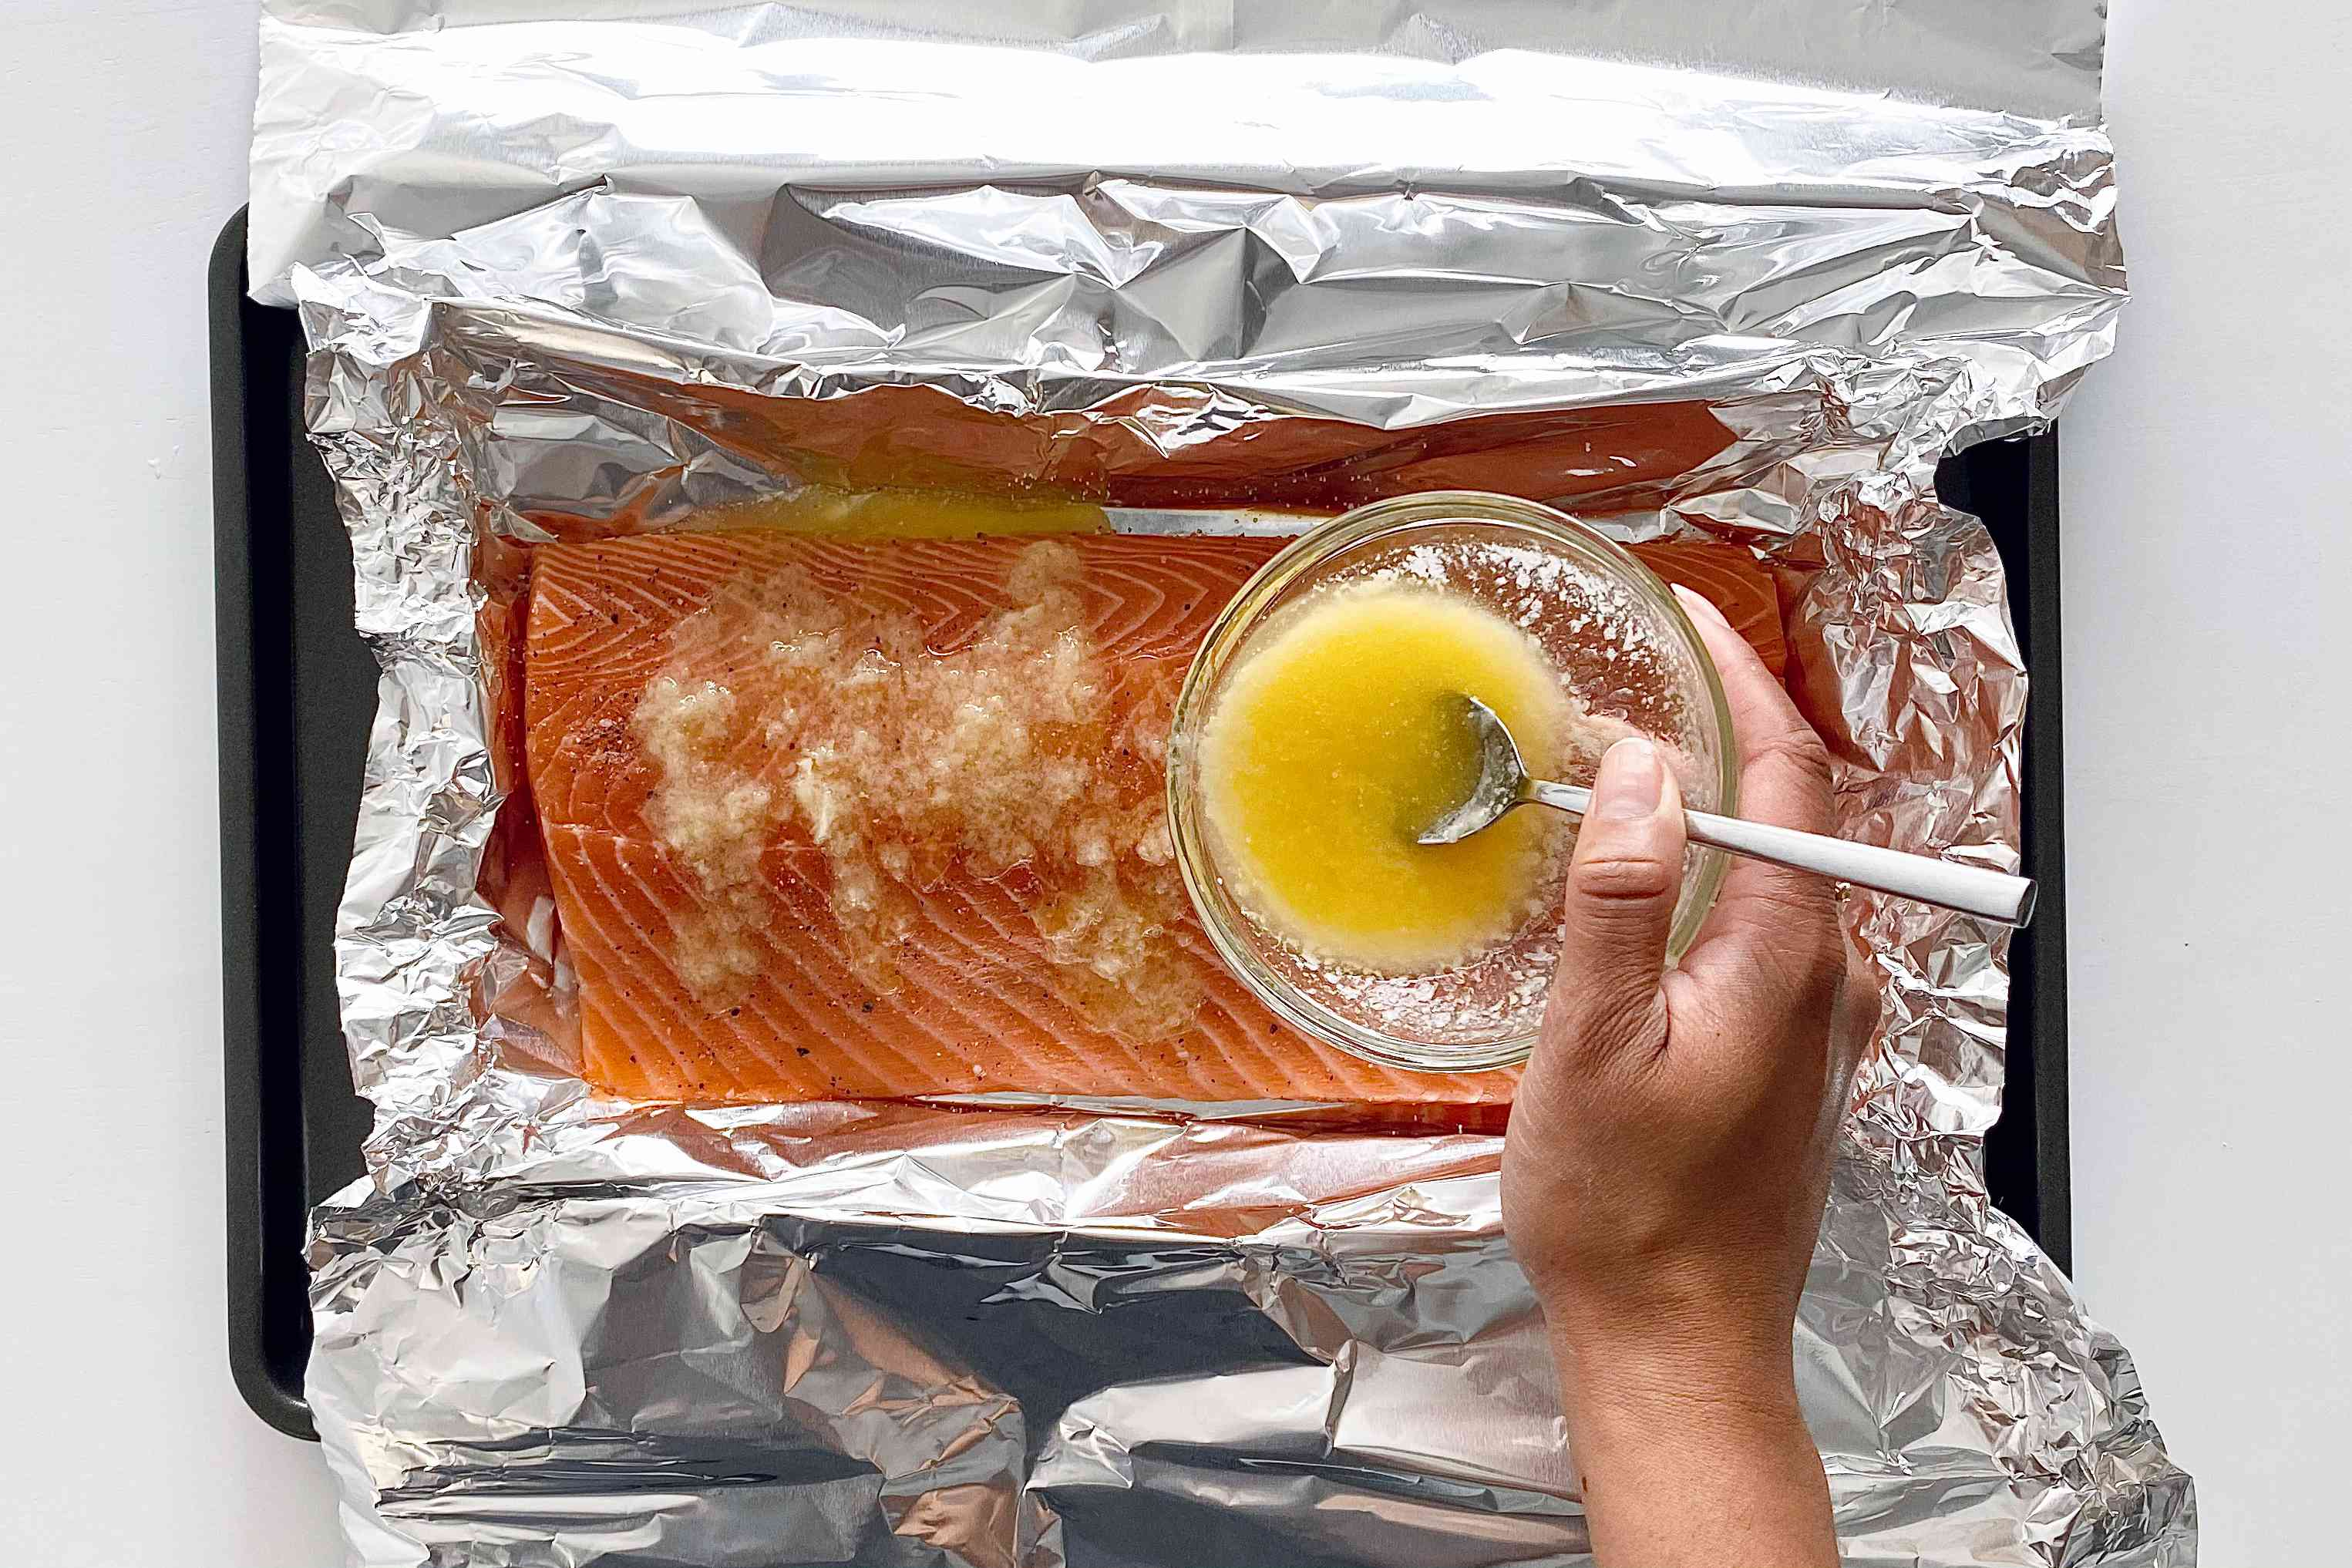 Making a Roasted Side of Salmon by pouring melted butter on the unbaked salmon.